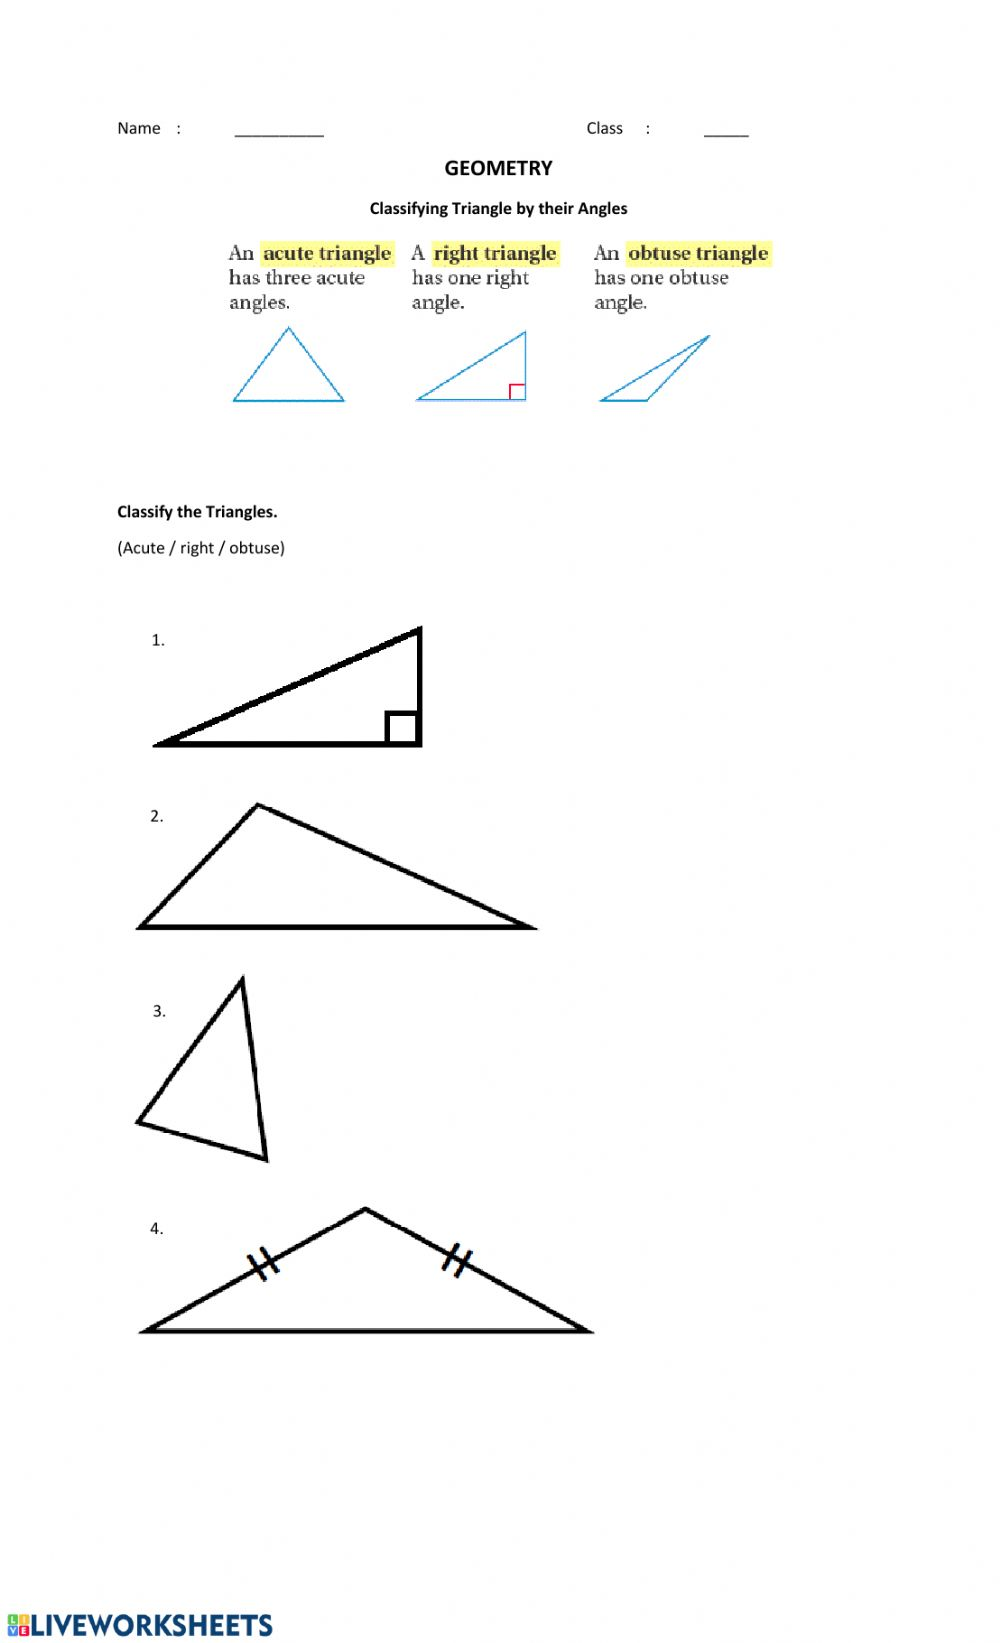 Classifying Triangles by Their Angles: Geometry worksheet